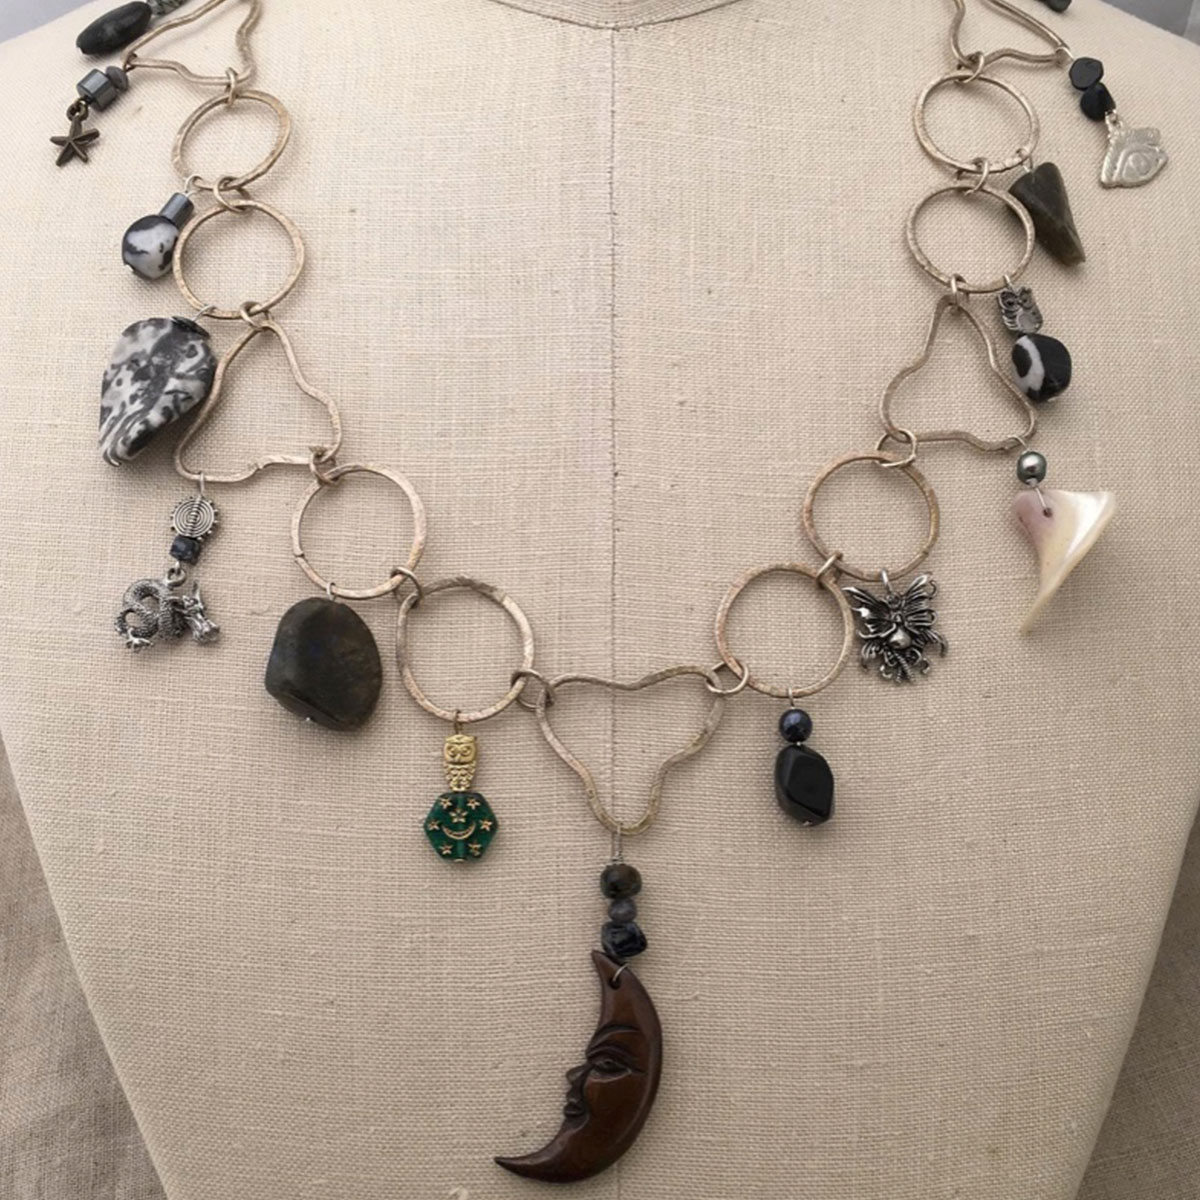 Boho Gypsys Treasures - Handcrafted jewelry inspired by the sea!